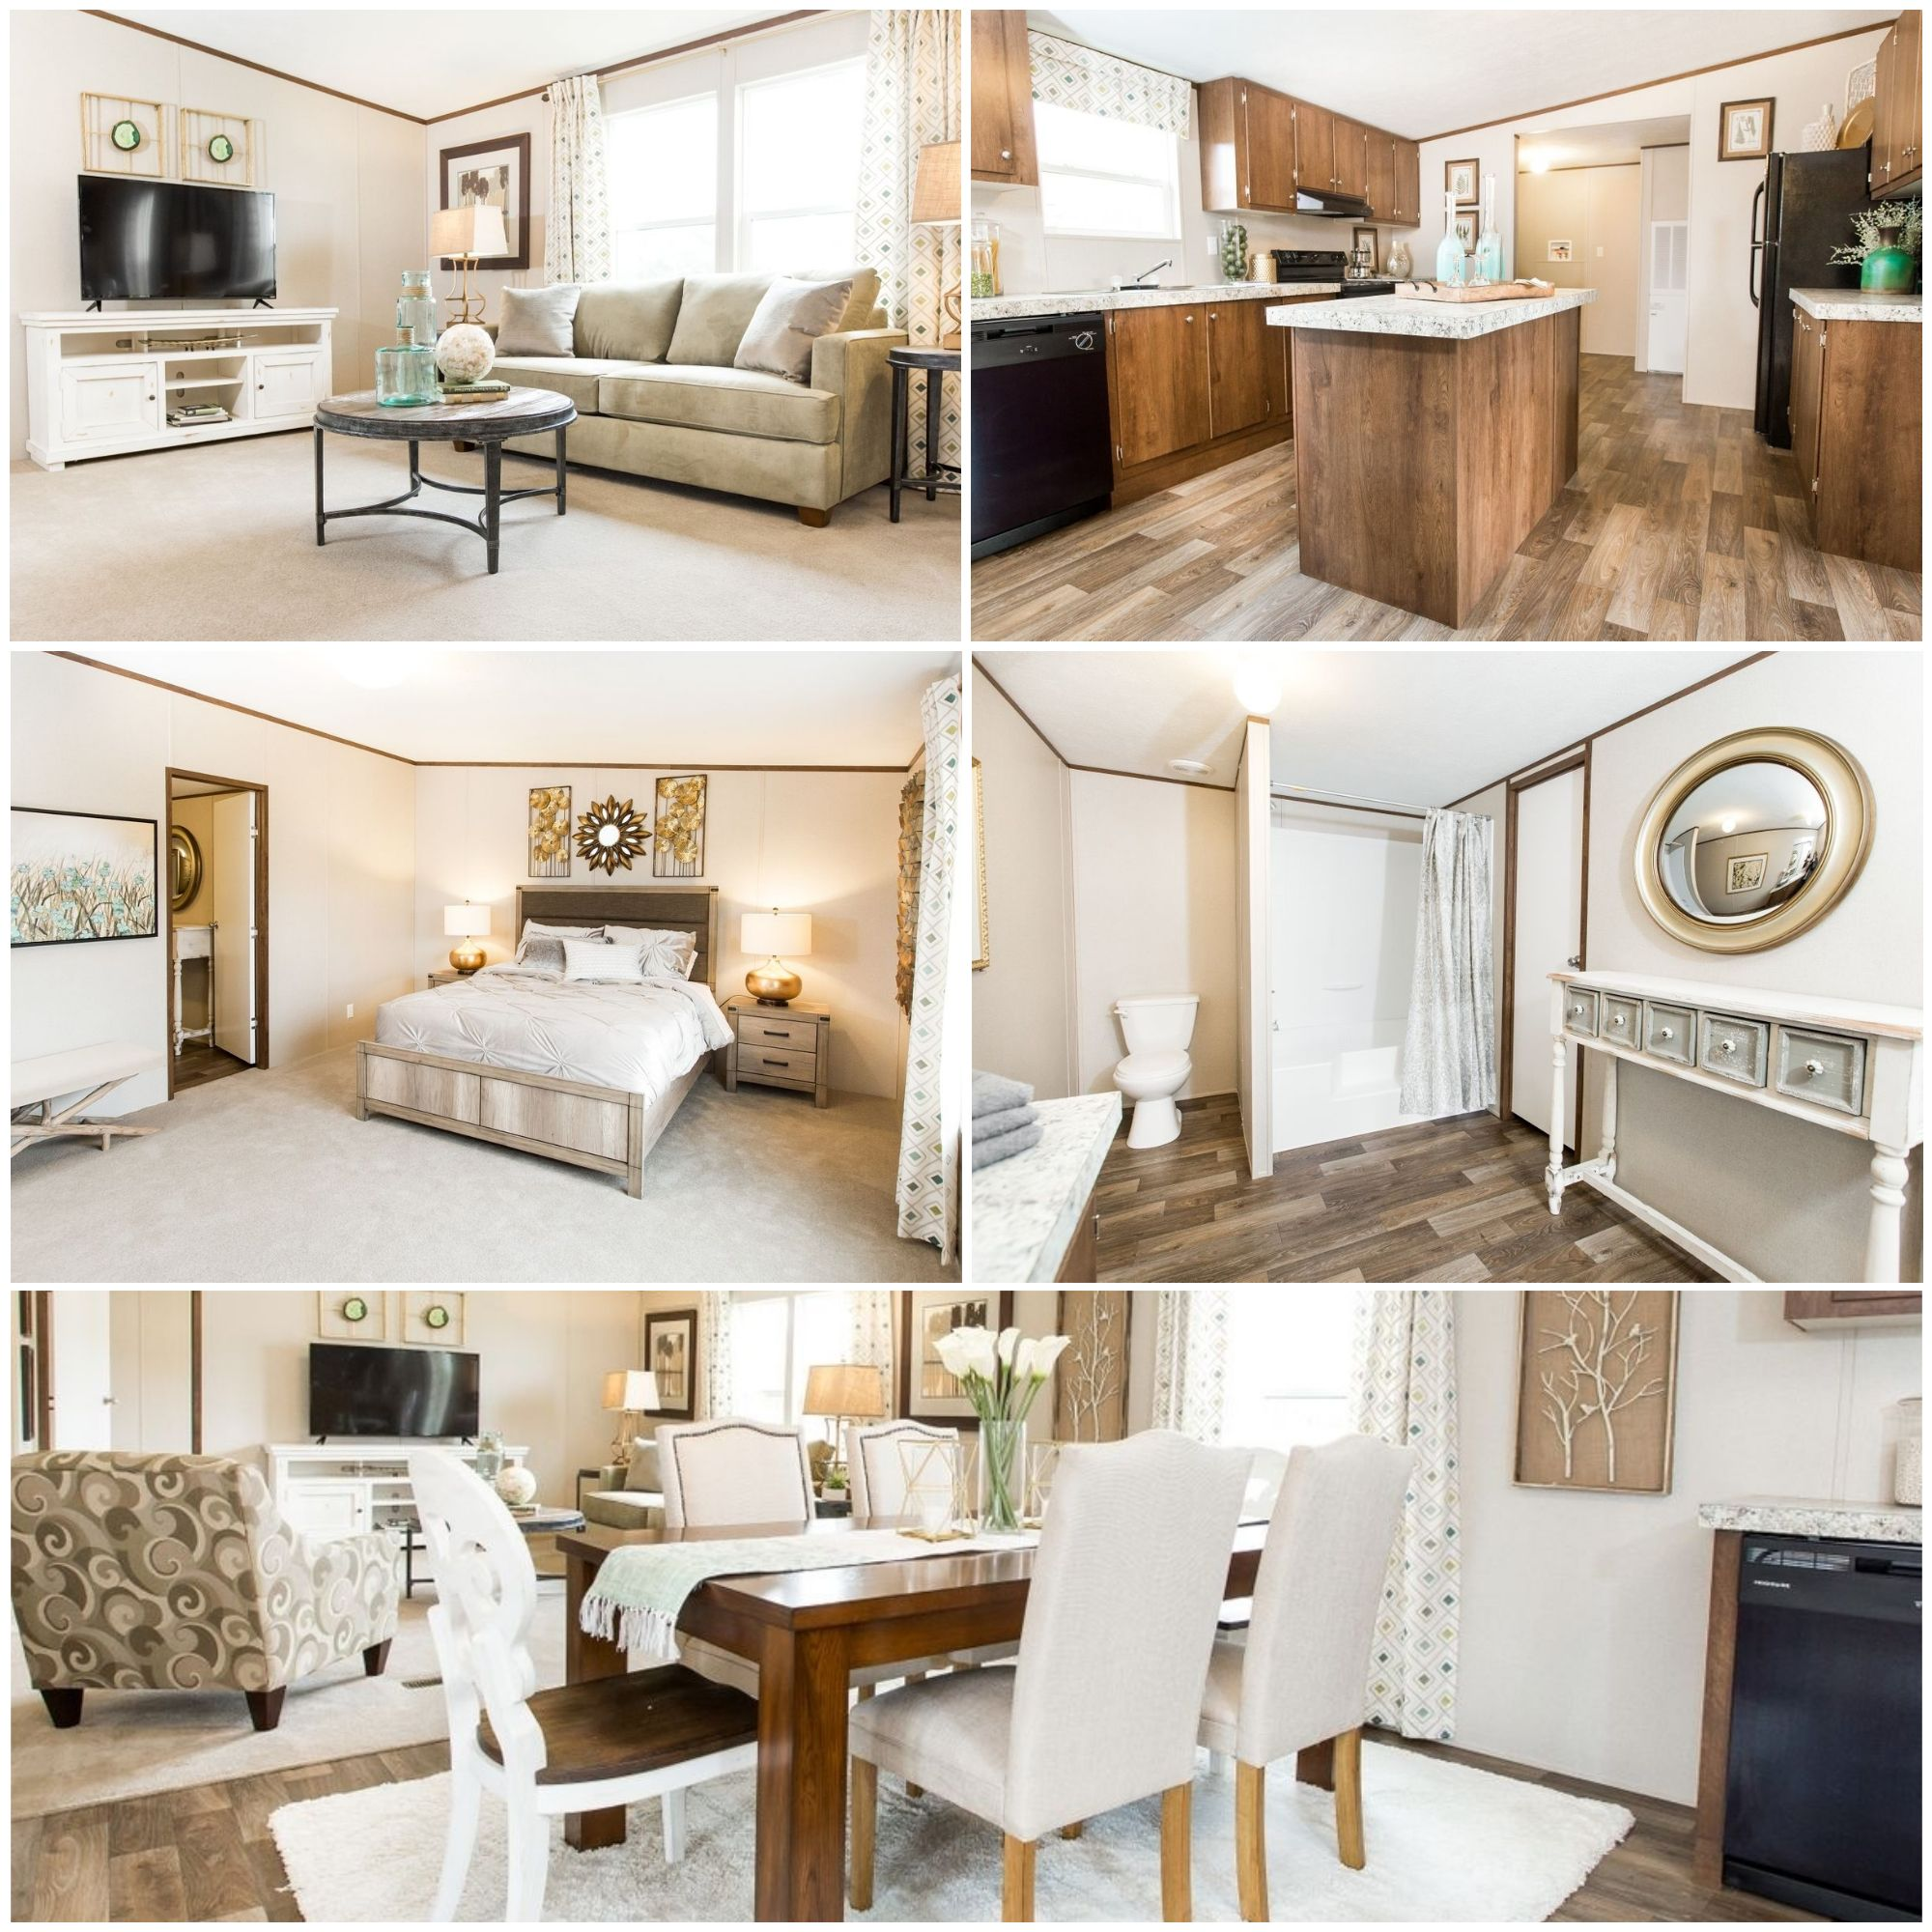 4 Bedroom Mobile Home Starting At Just 52,499 Home